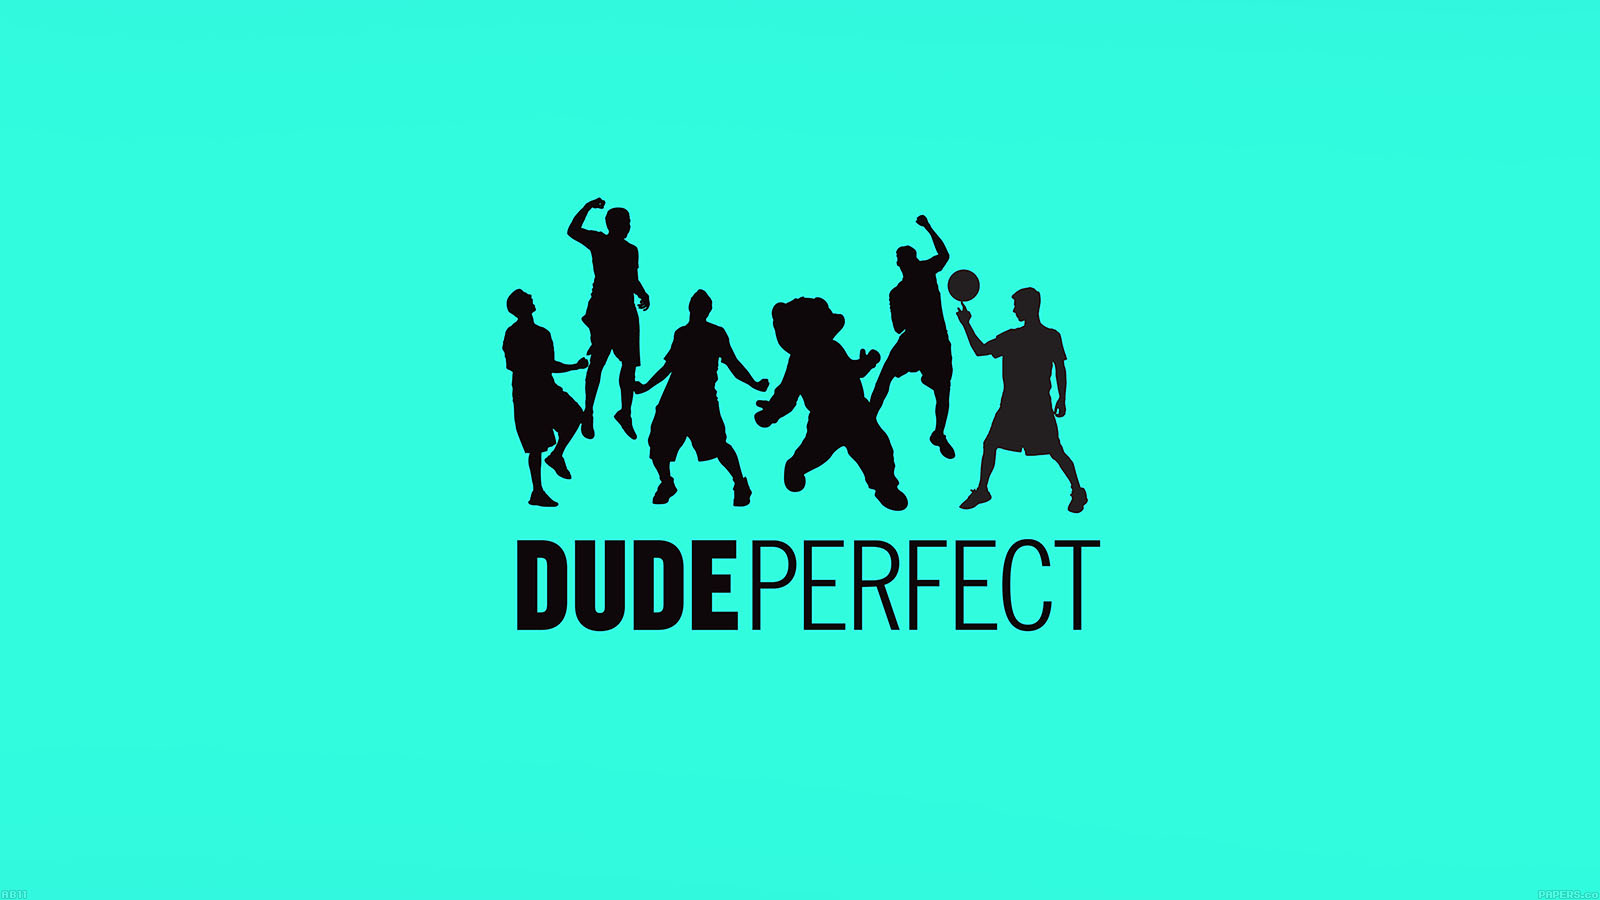 Cute Wallpaper Images For Dp Ab11 Wallpaper Dude Perfect Logo Music Papers Co